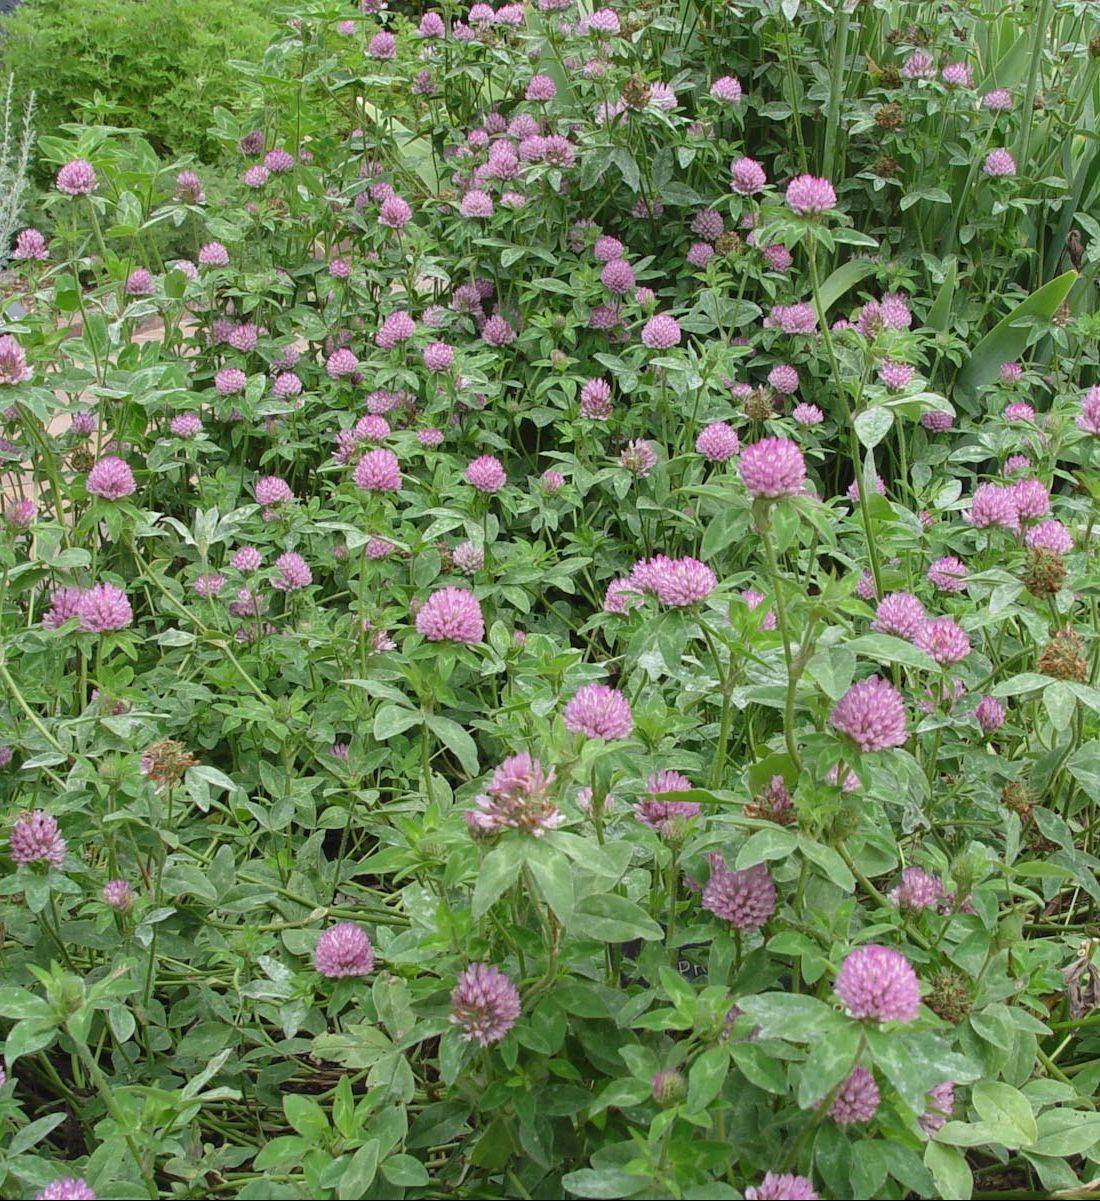 Strawberry clover is a green manure crop to improve soils, with a bonus of pink flowers that make excellent tea.